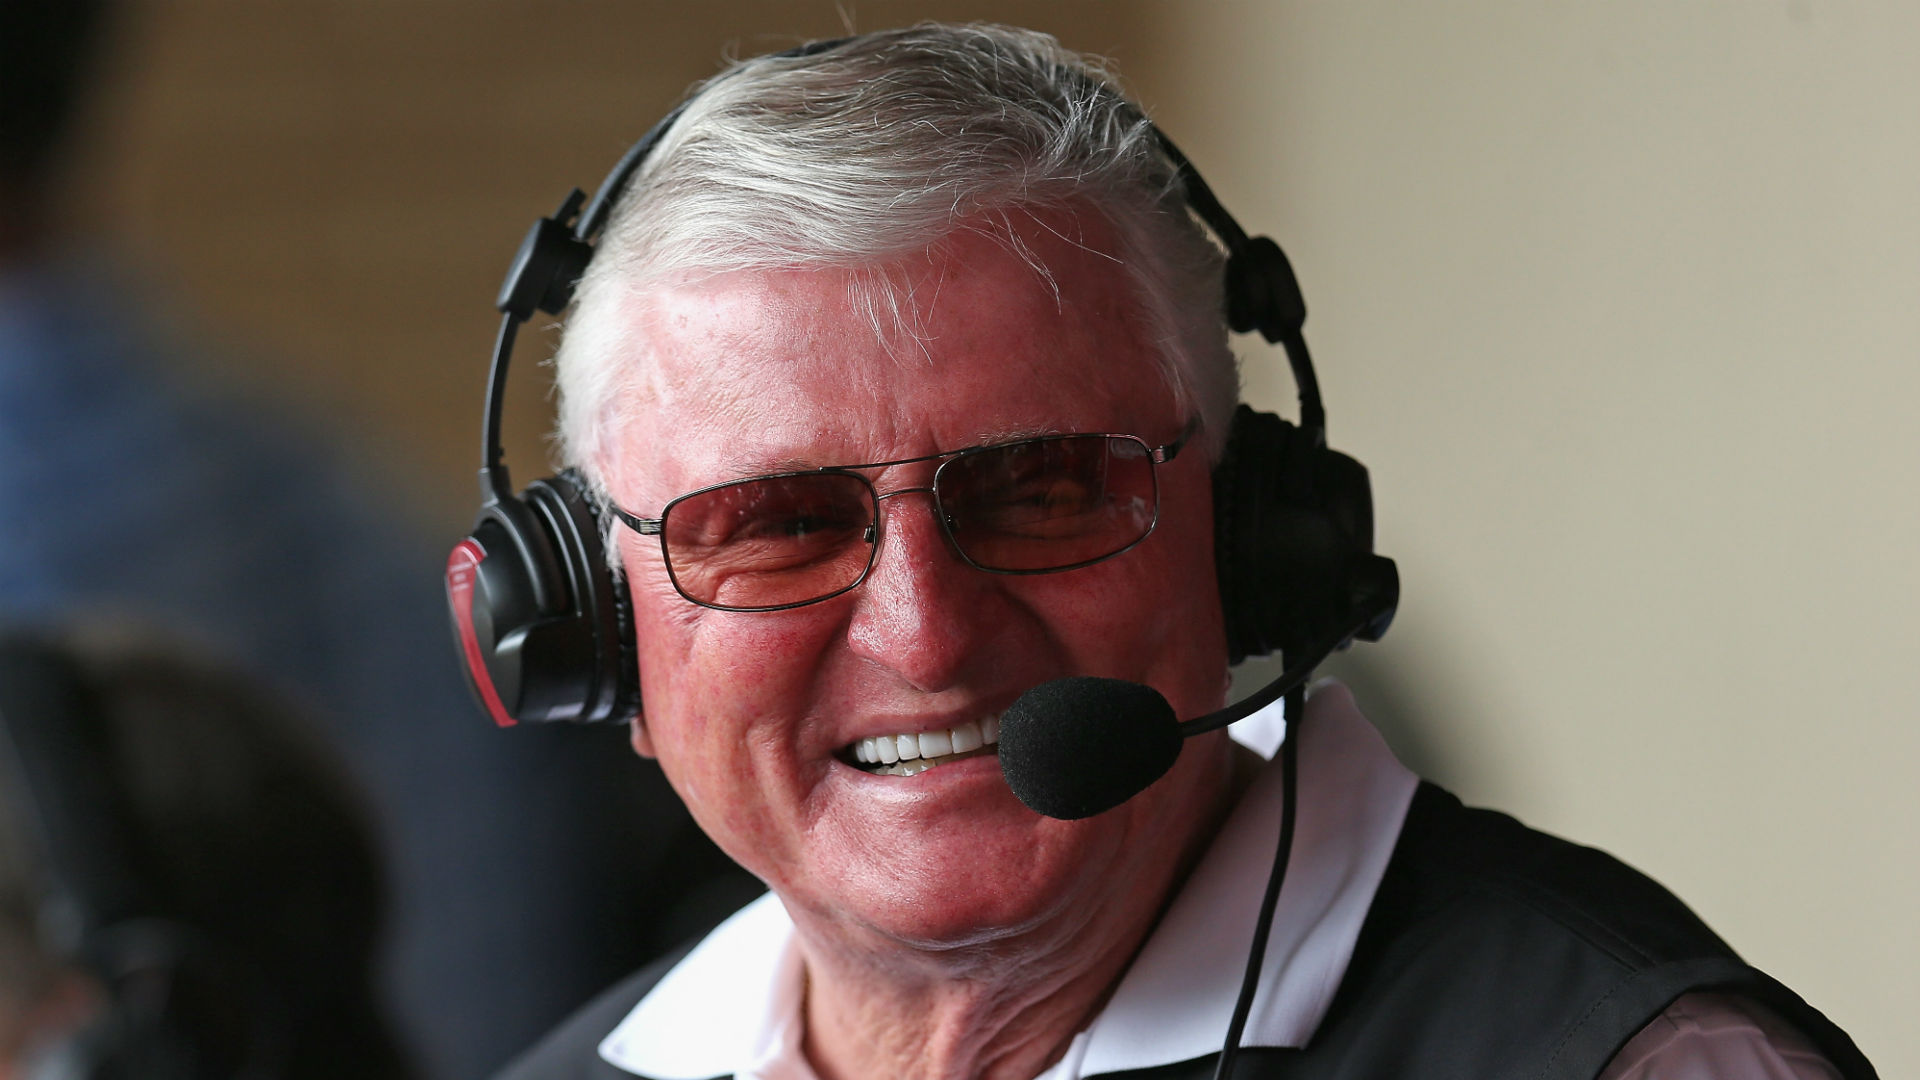 Chicago White Sox Broadcaster Ken 'Hawk' Harrelson Set to Retire